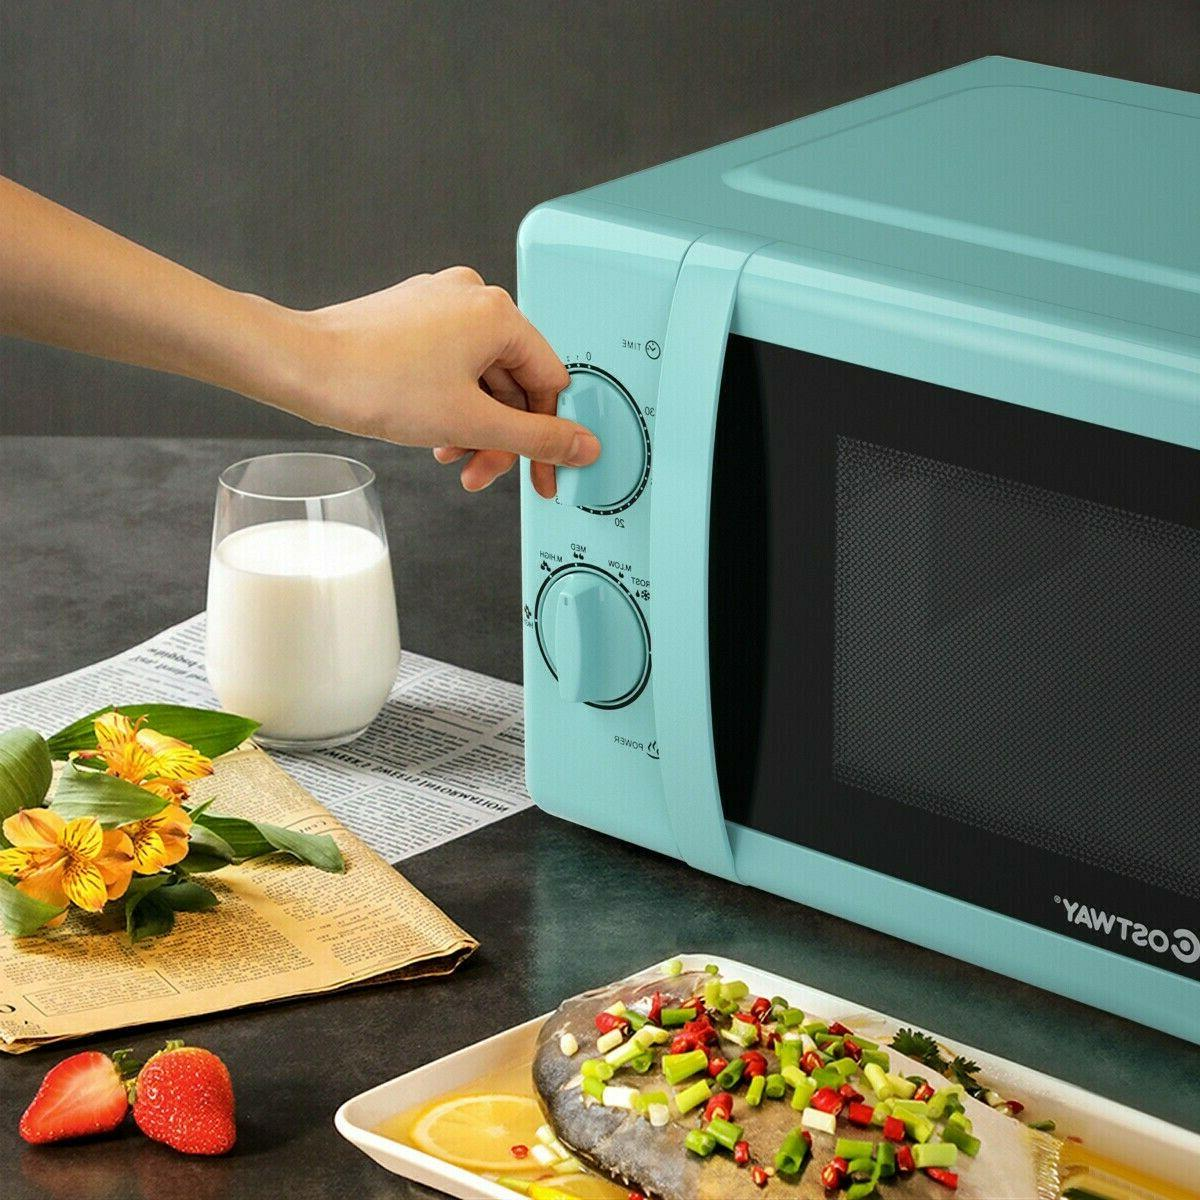 Retro Oven Teal Color Cooking 700W New